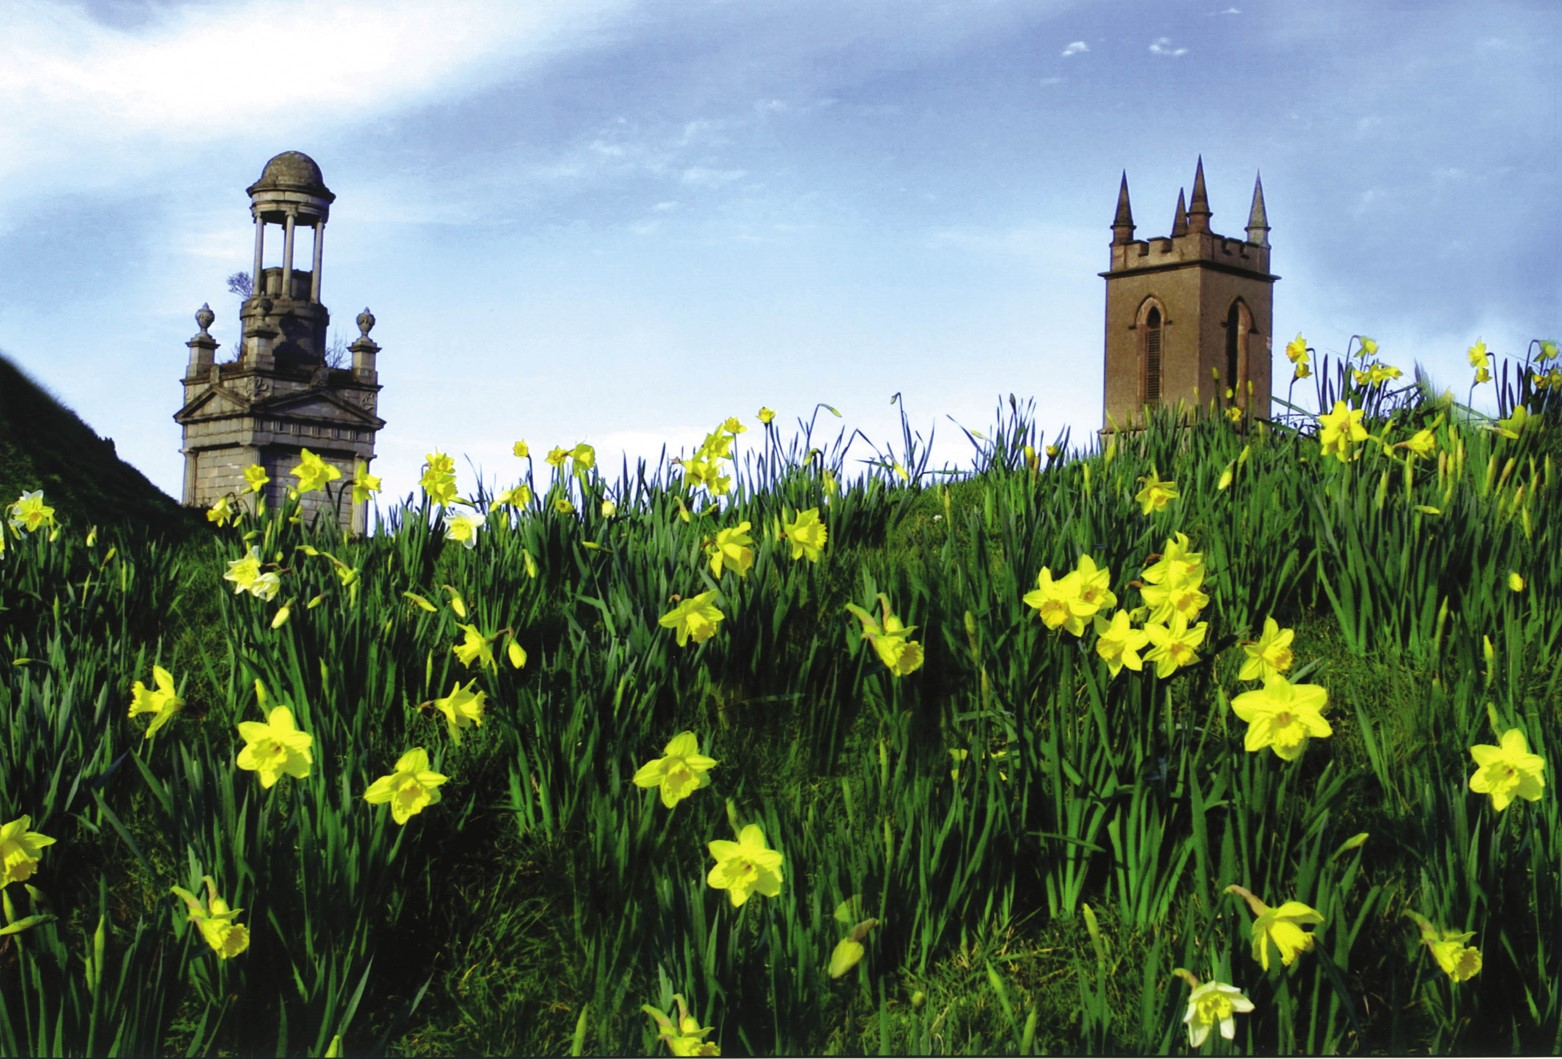 Church and bell tower behind field of daffodils